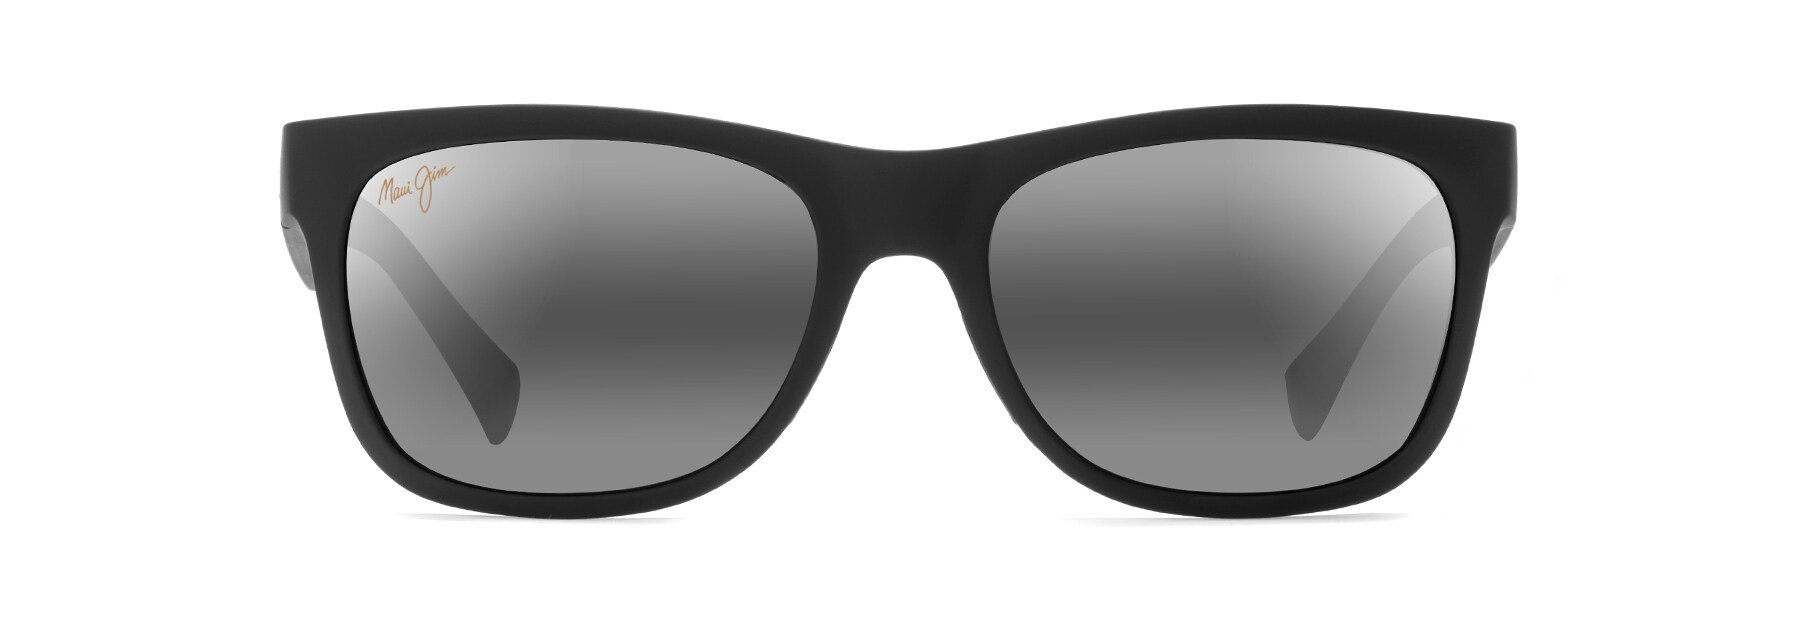 kahi polarized sunglasses maui jim®maui jim · sunglasses · wrap; kahi matte black kahi front view